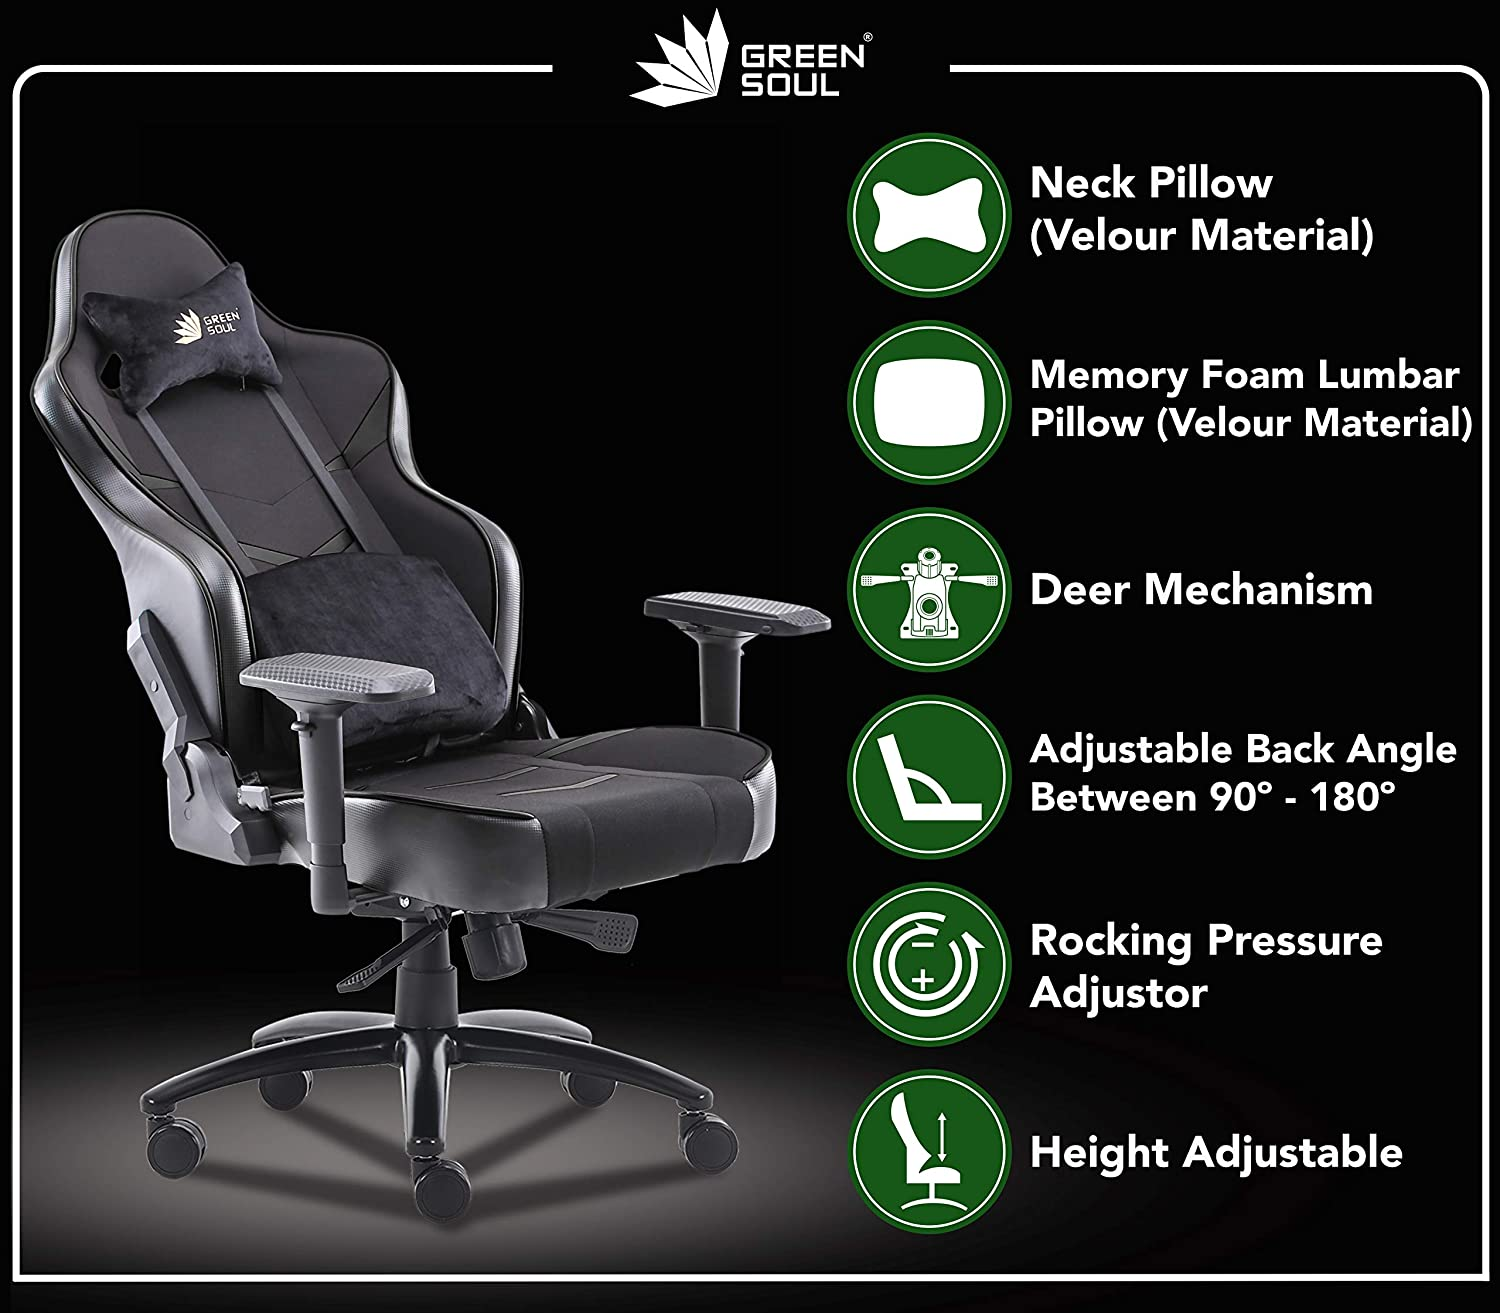 Green Soul Monster Ultimate Gaming Chair Review